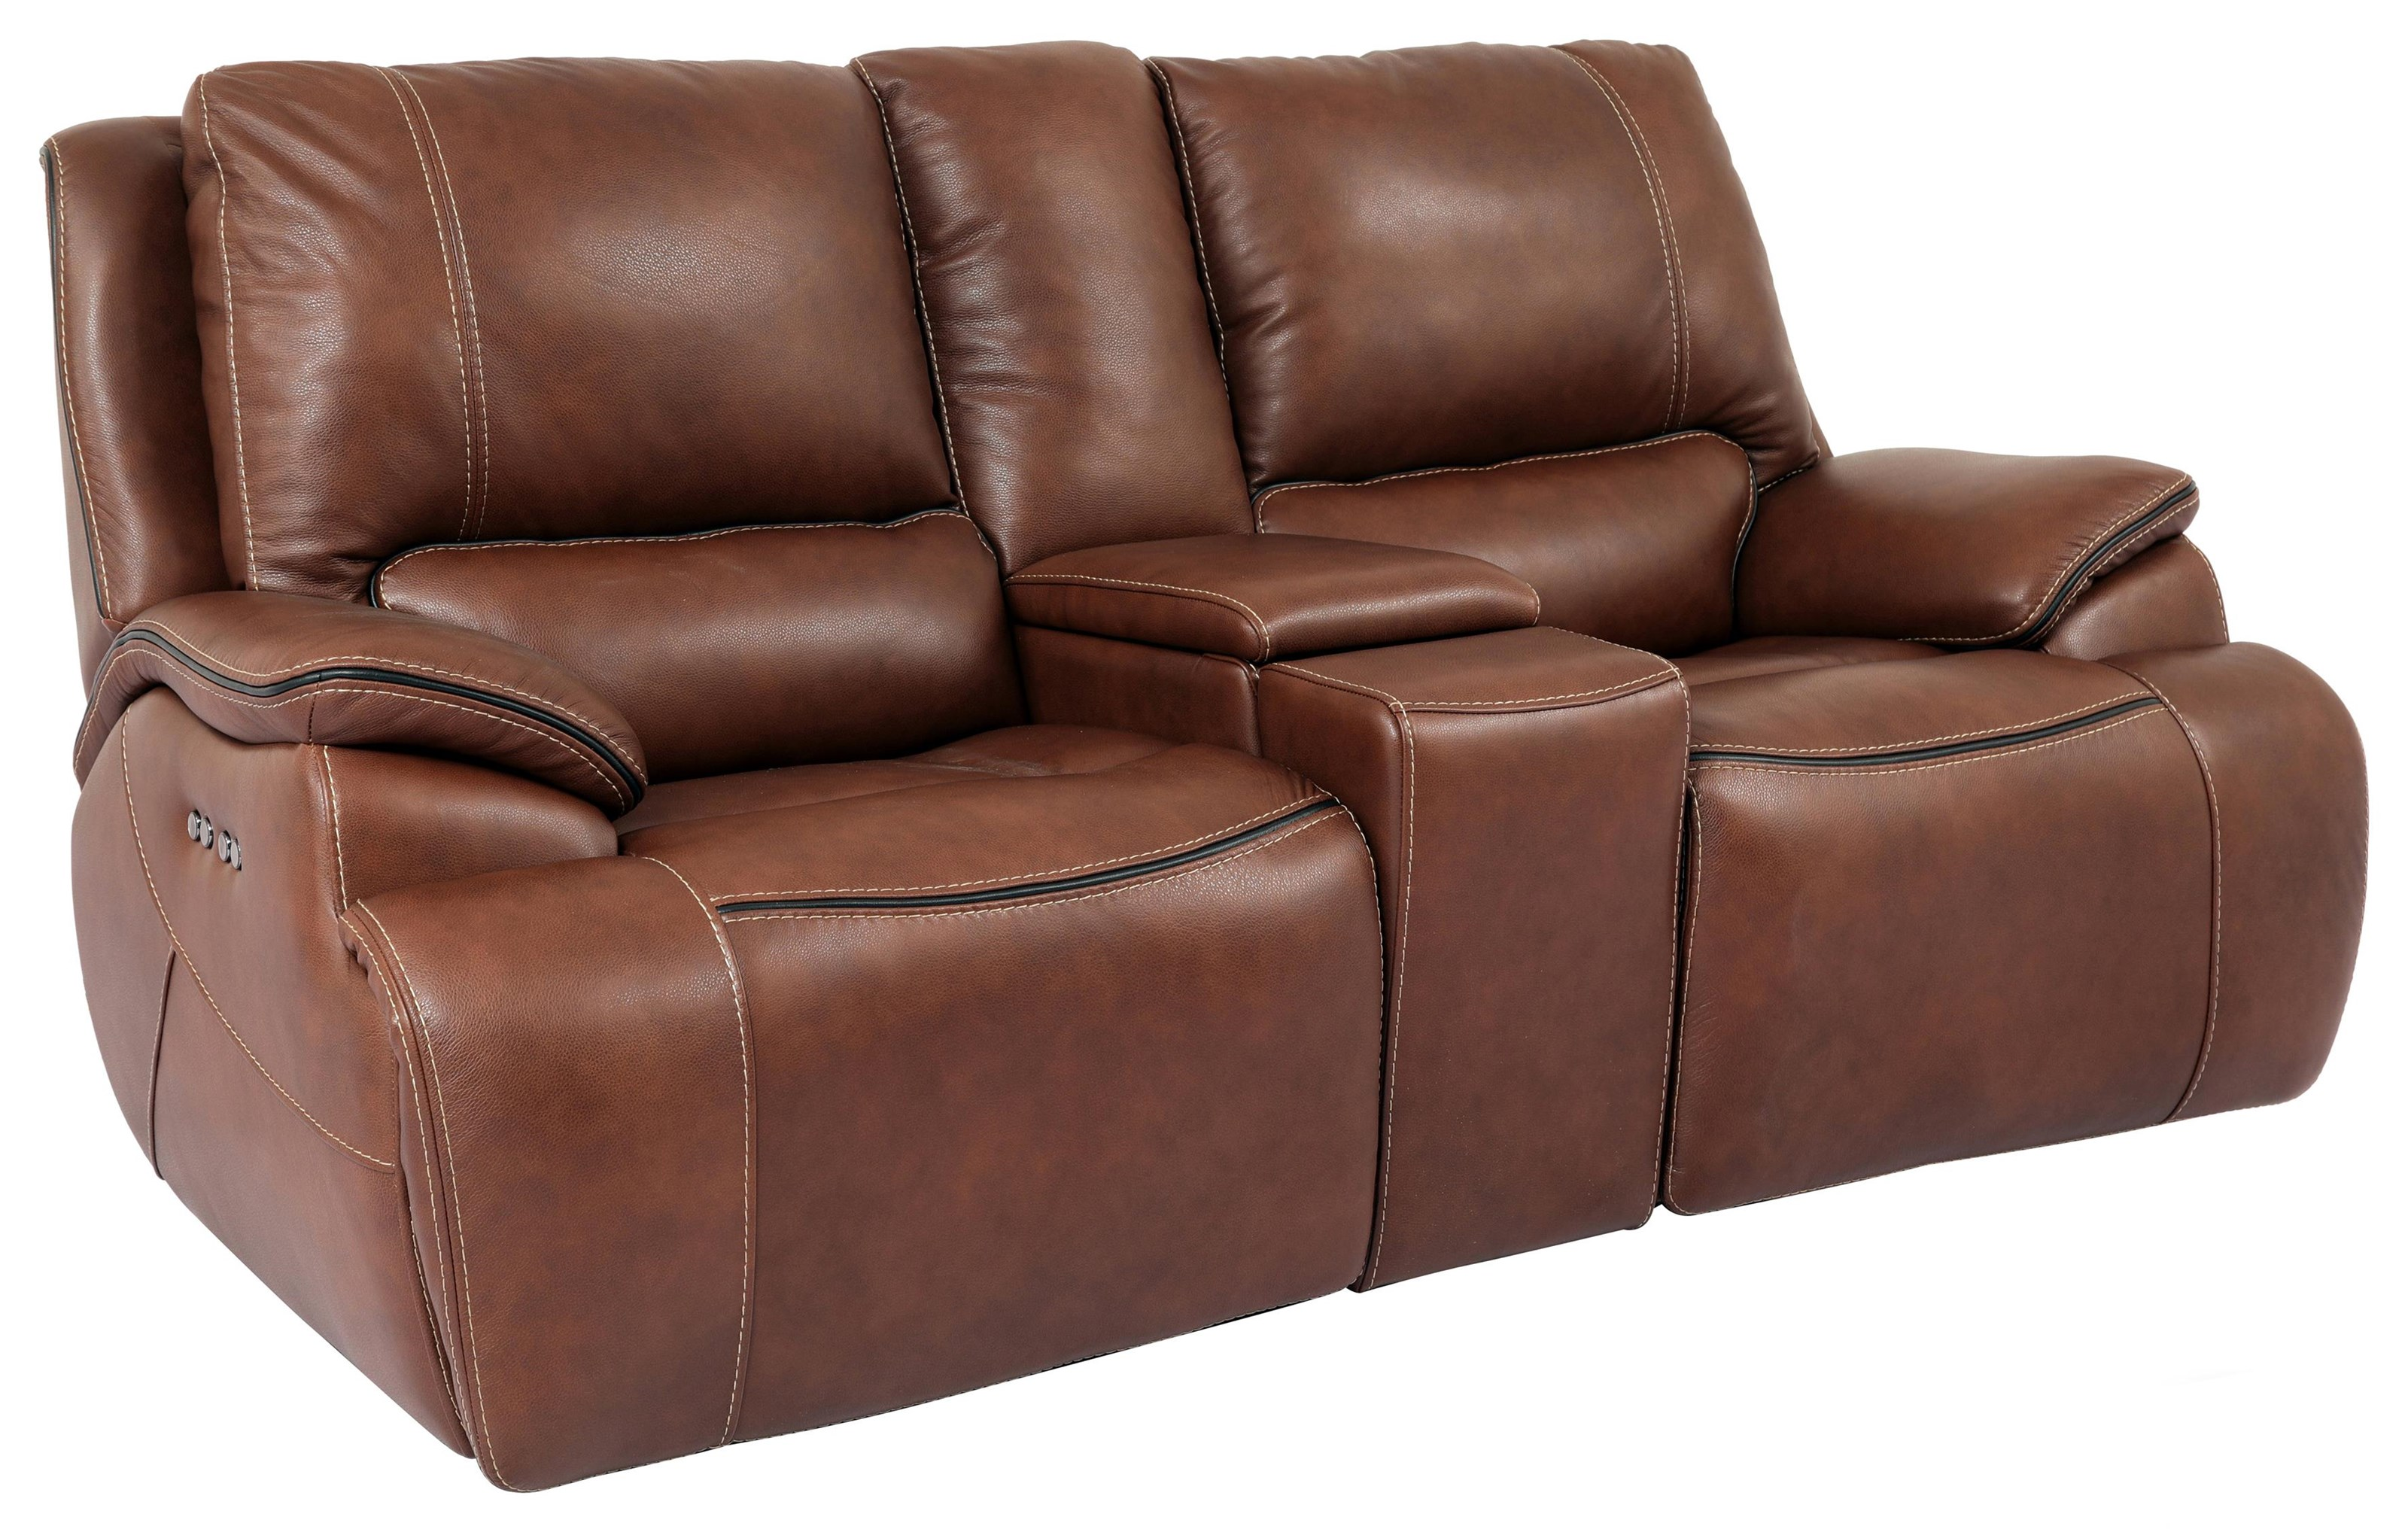 Power Reclining Loveseat w/ Cupholder